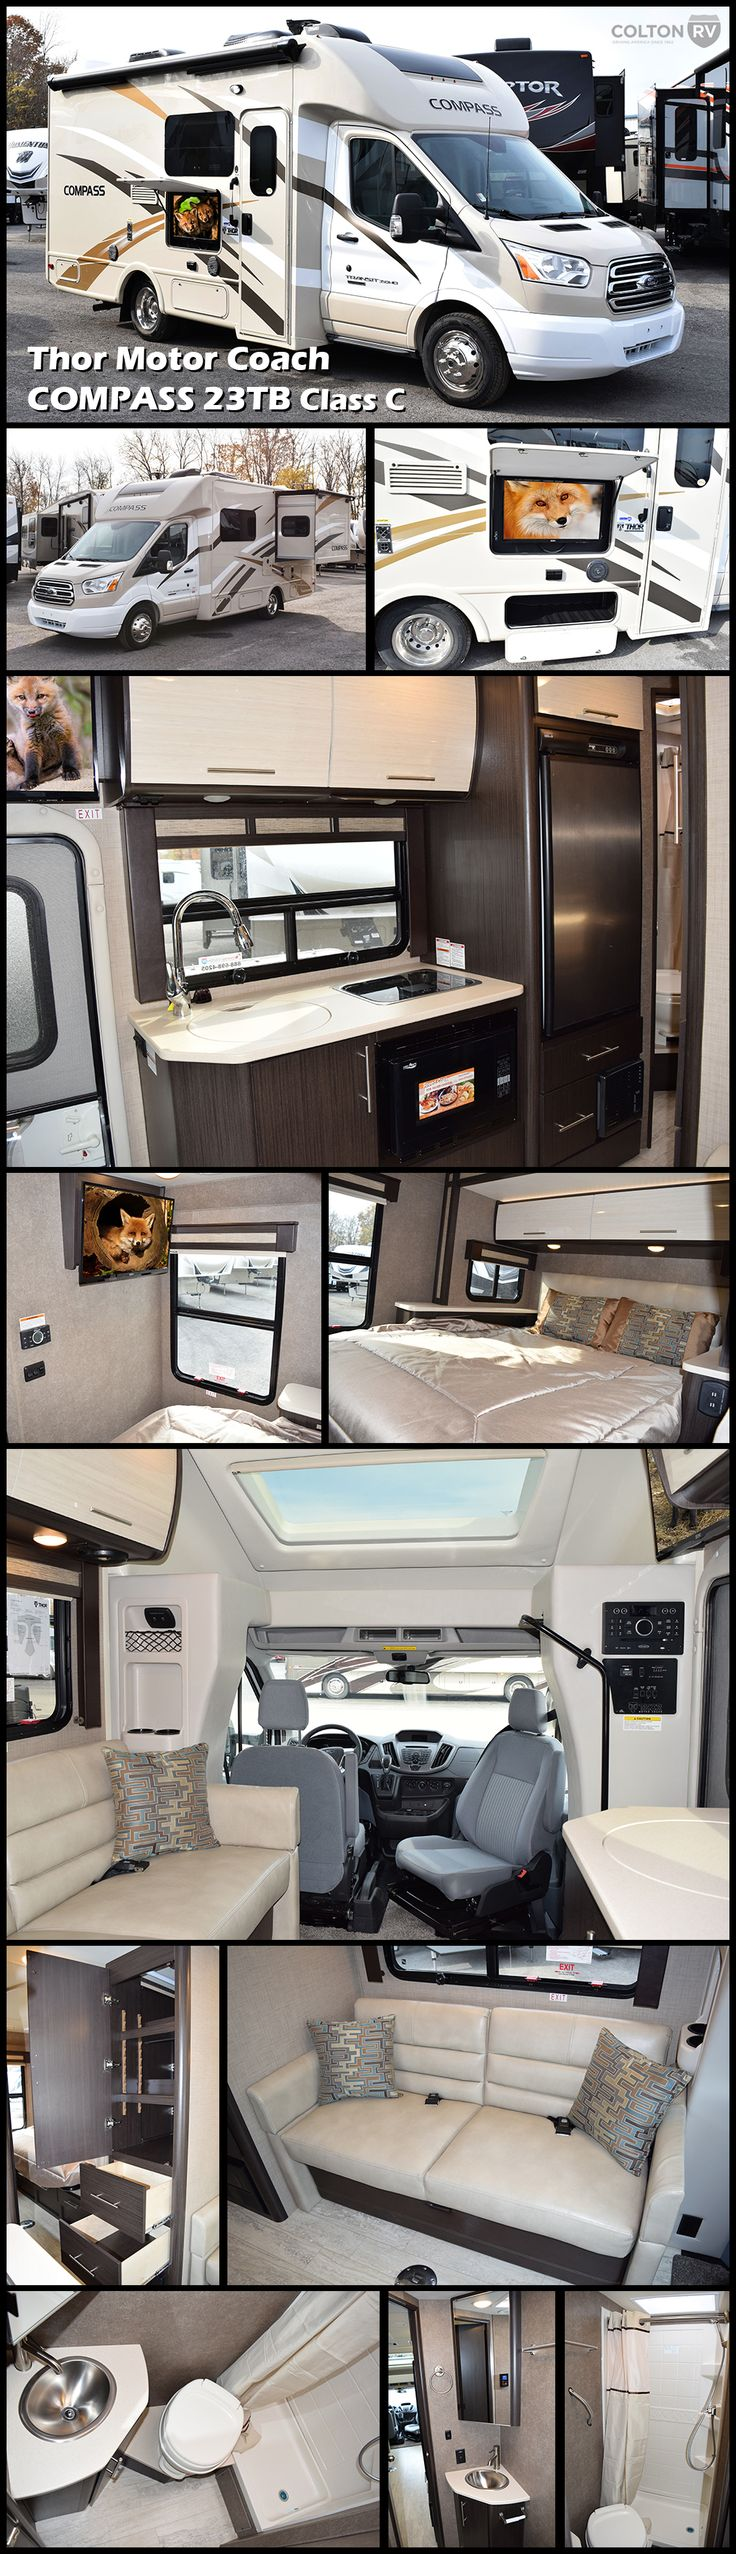 Awaken your wanderlust spirit and travel in comfort in this diesel 2017 Thor Motor Coach COMPASS 23TB RUV Class C motorhome. This Recreational Utility Vehicle features all the amenities needed for a couple plus one or two, including a complete bath, a single slide, and much more!